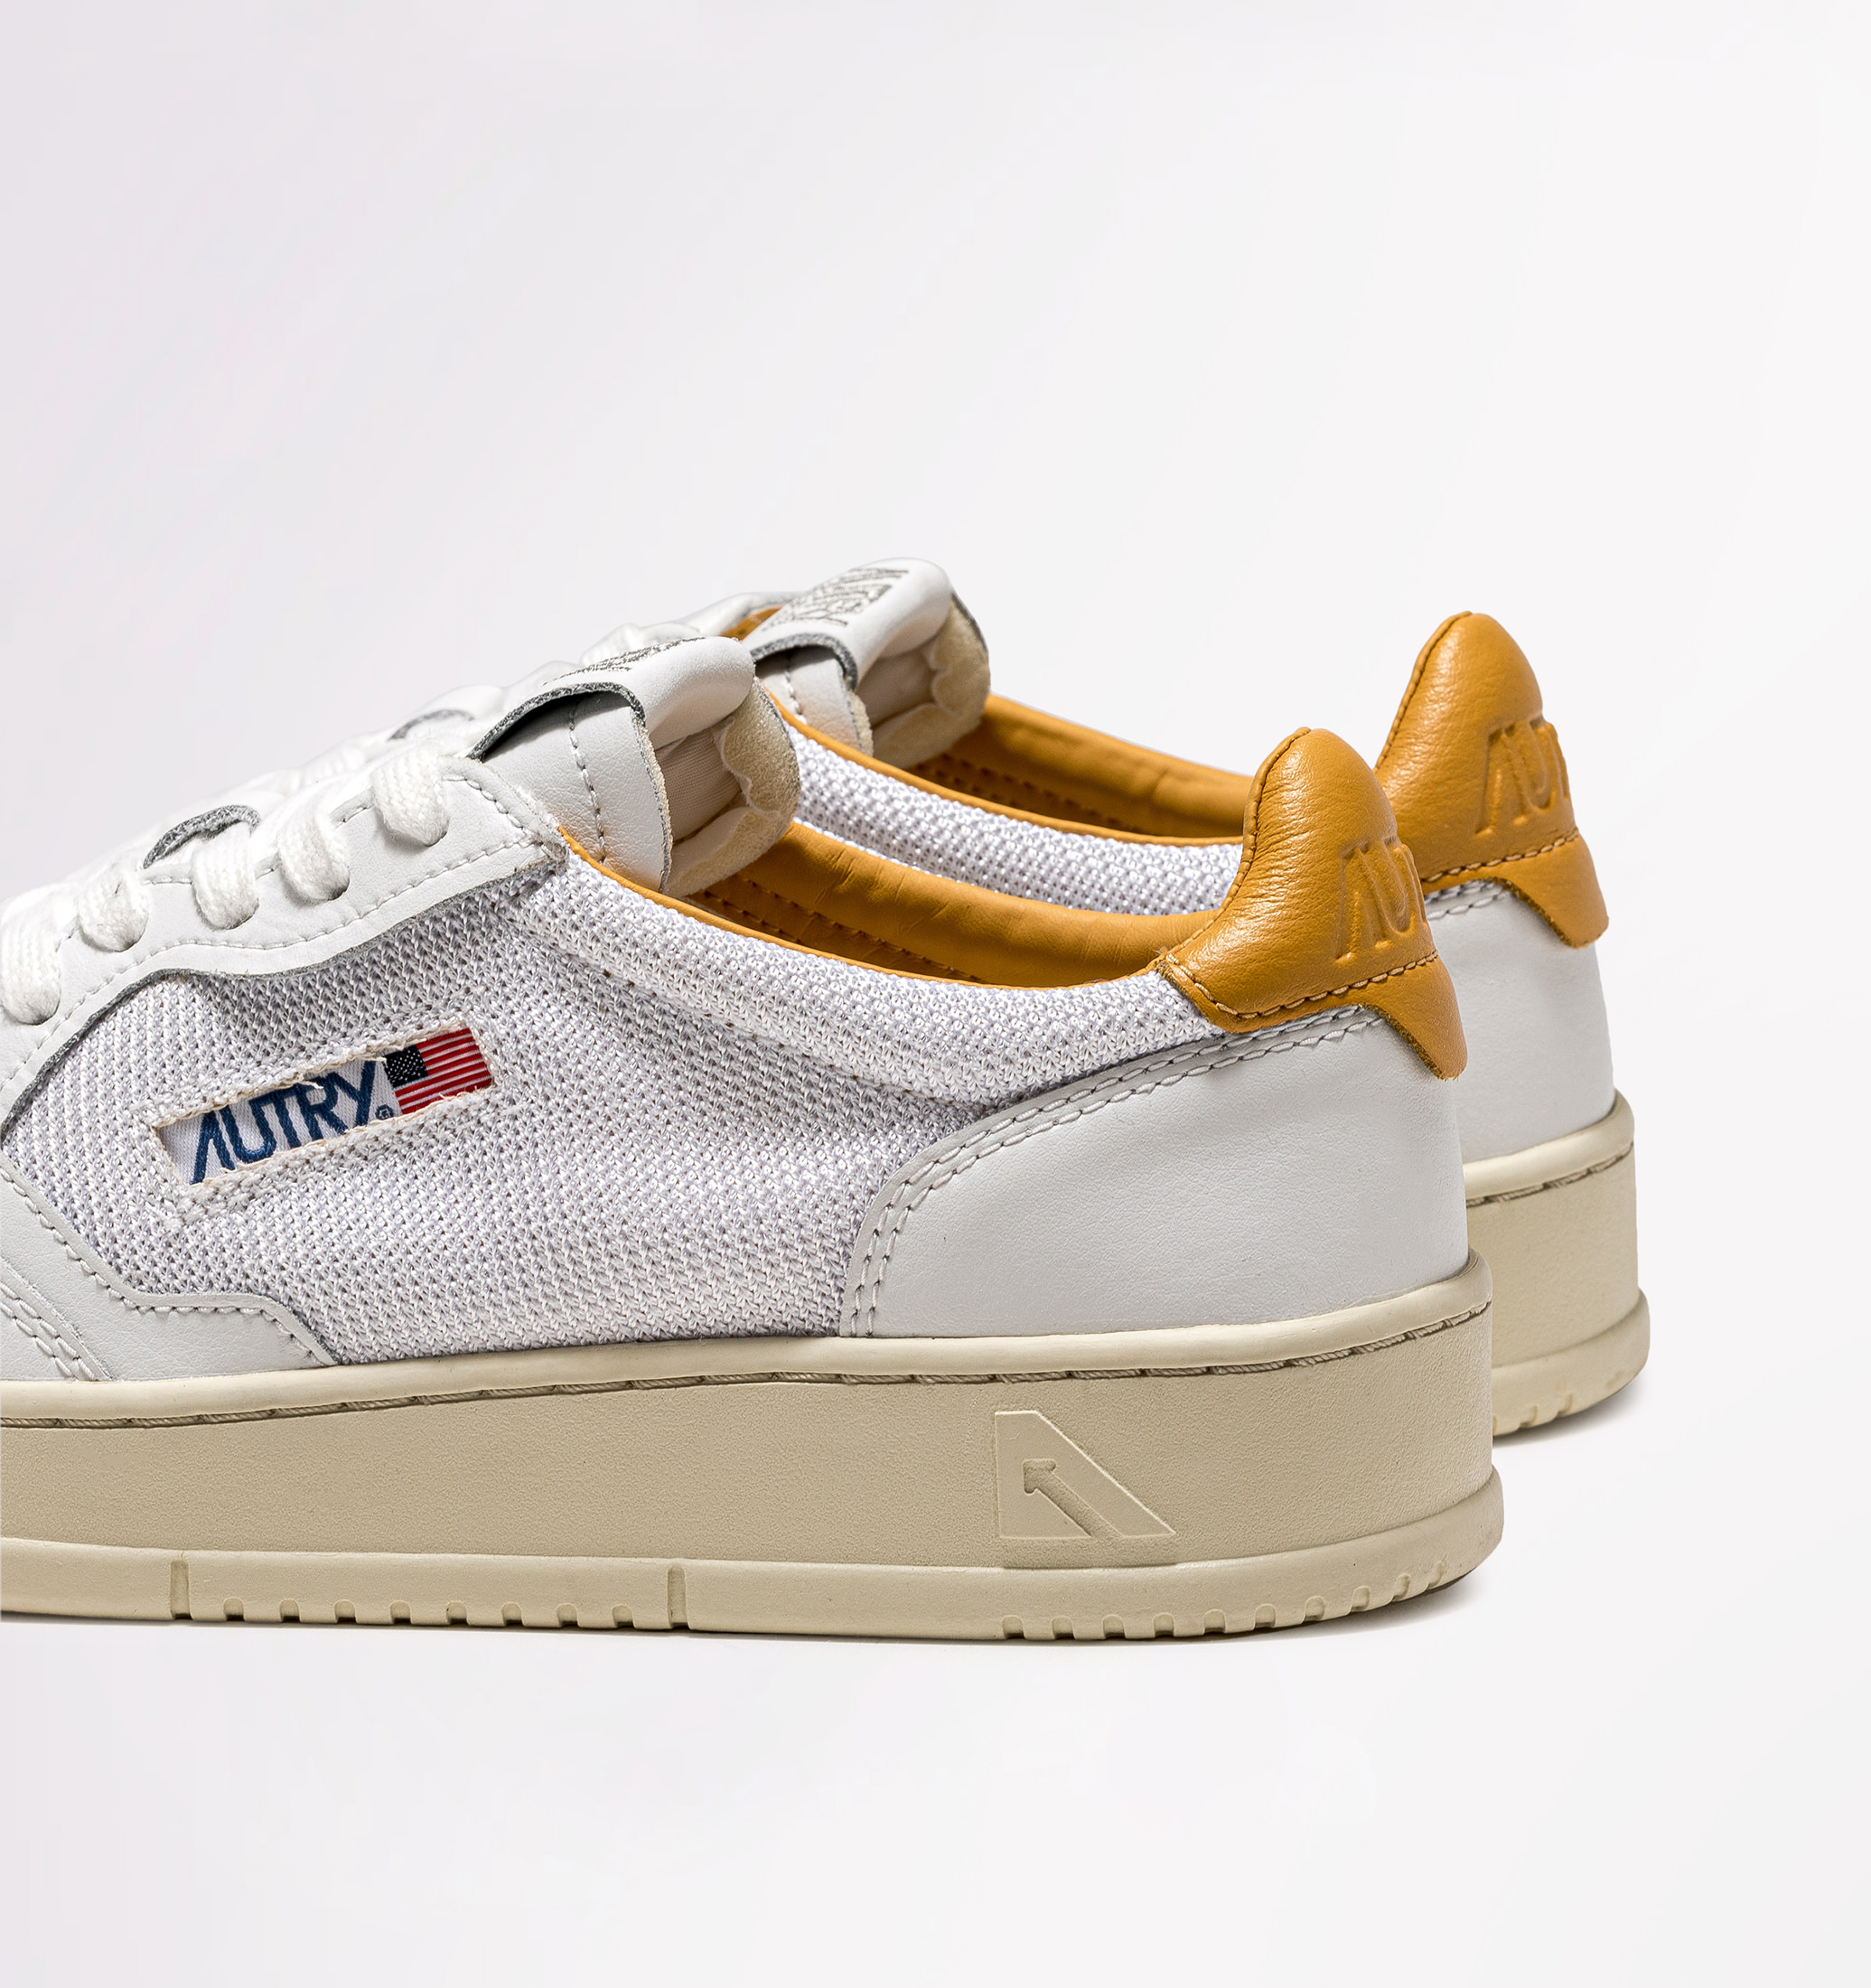 autry-01-low-leather-kevlar-white-gold-back